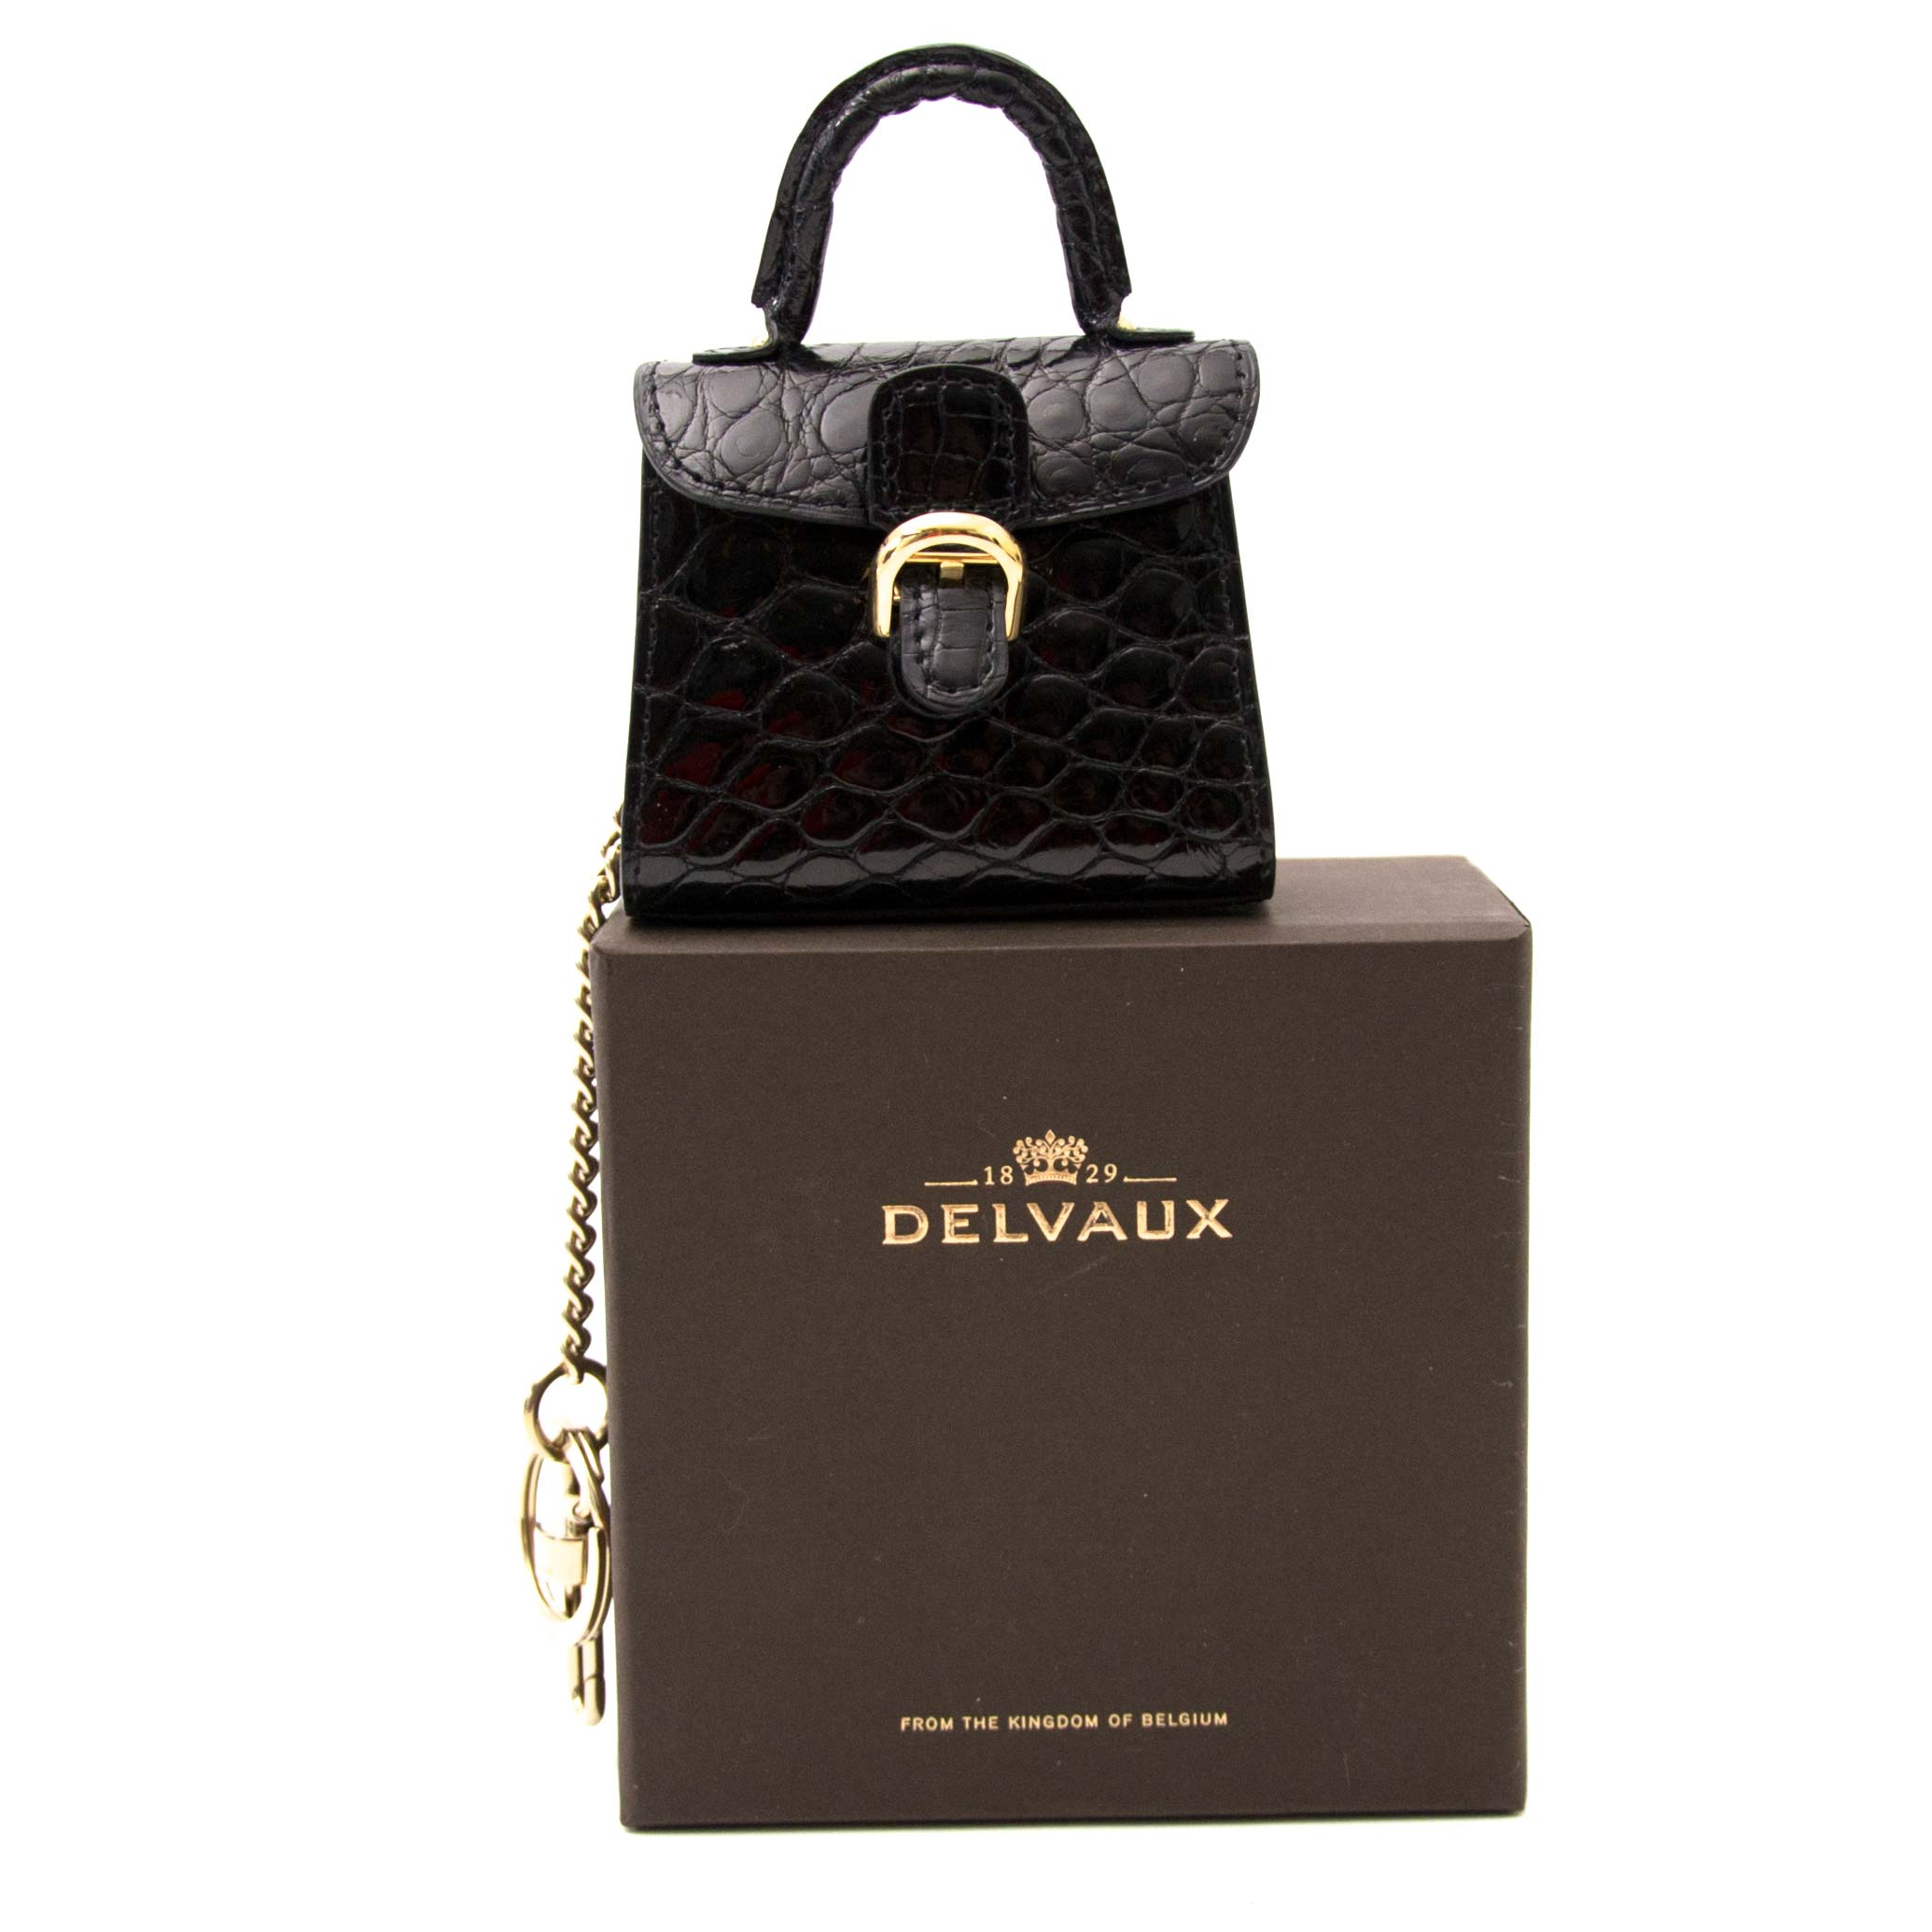 43f806a3a1 ... Buy now online your secondhand Delvaux Brillant Black Croco Bag Charm on  labellov.com